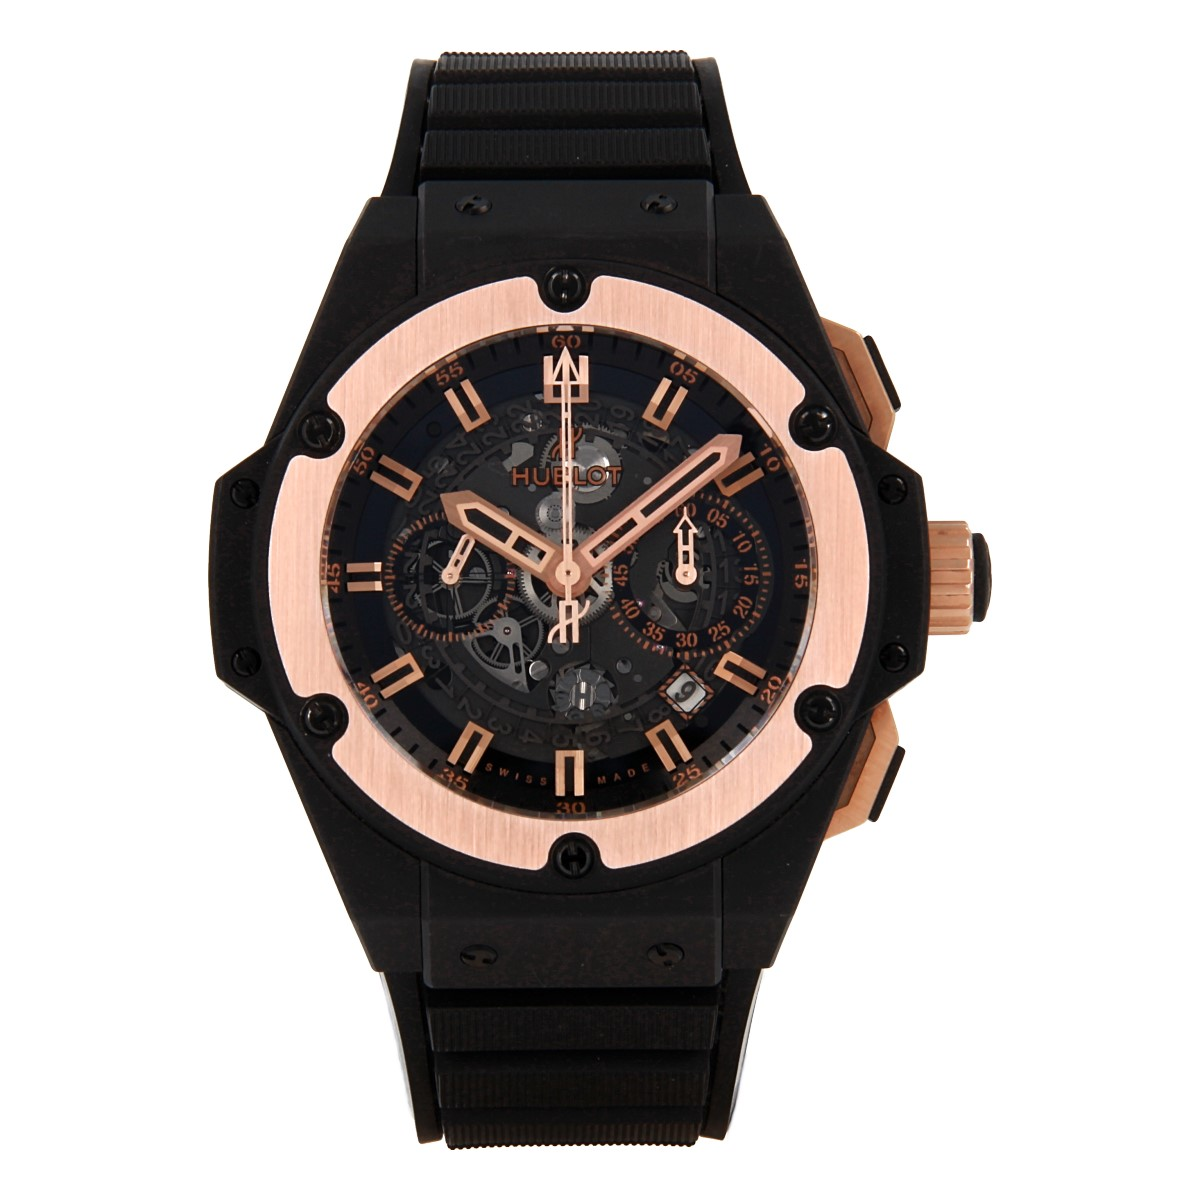 Hublot King Power Unico Cronógrafo 48mm | Comprar reloj Hublot de segunda mano